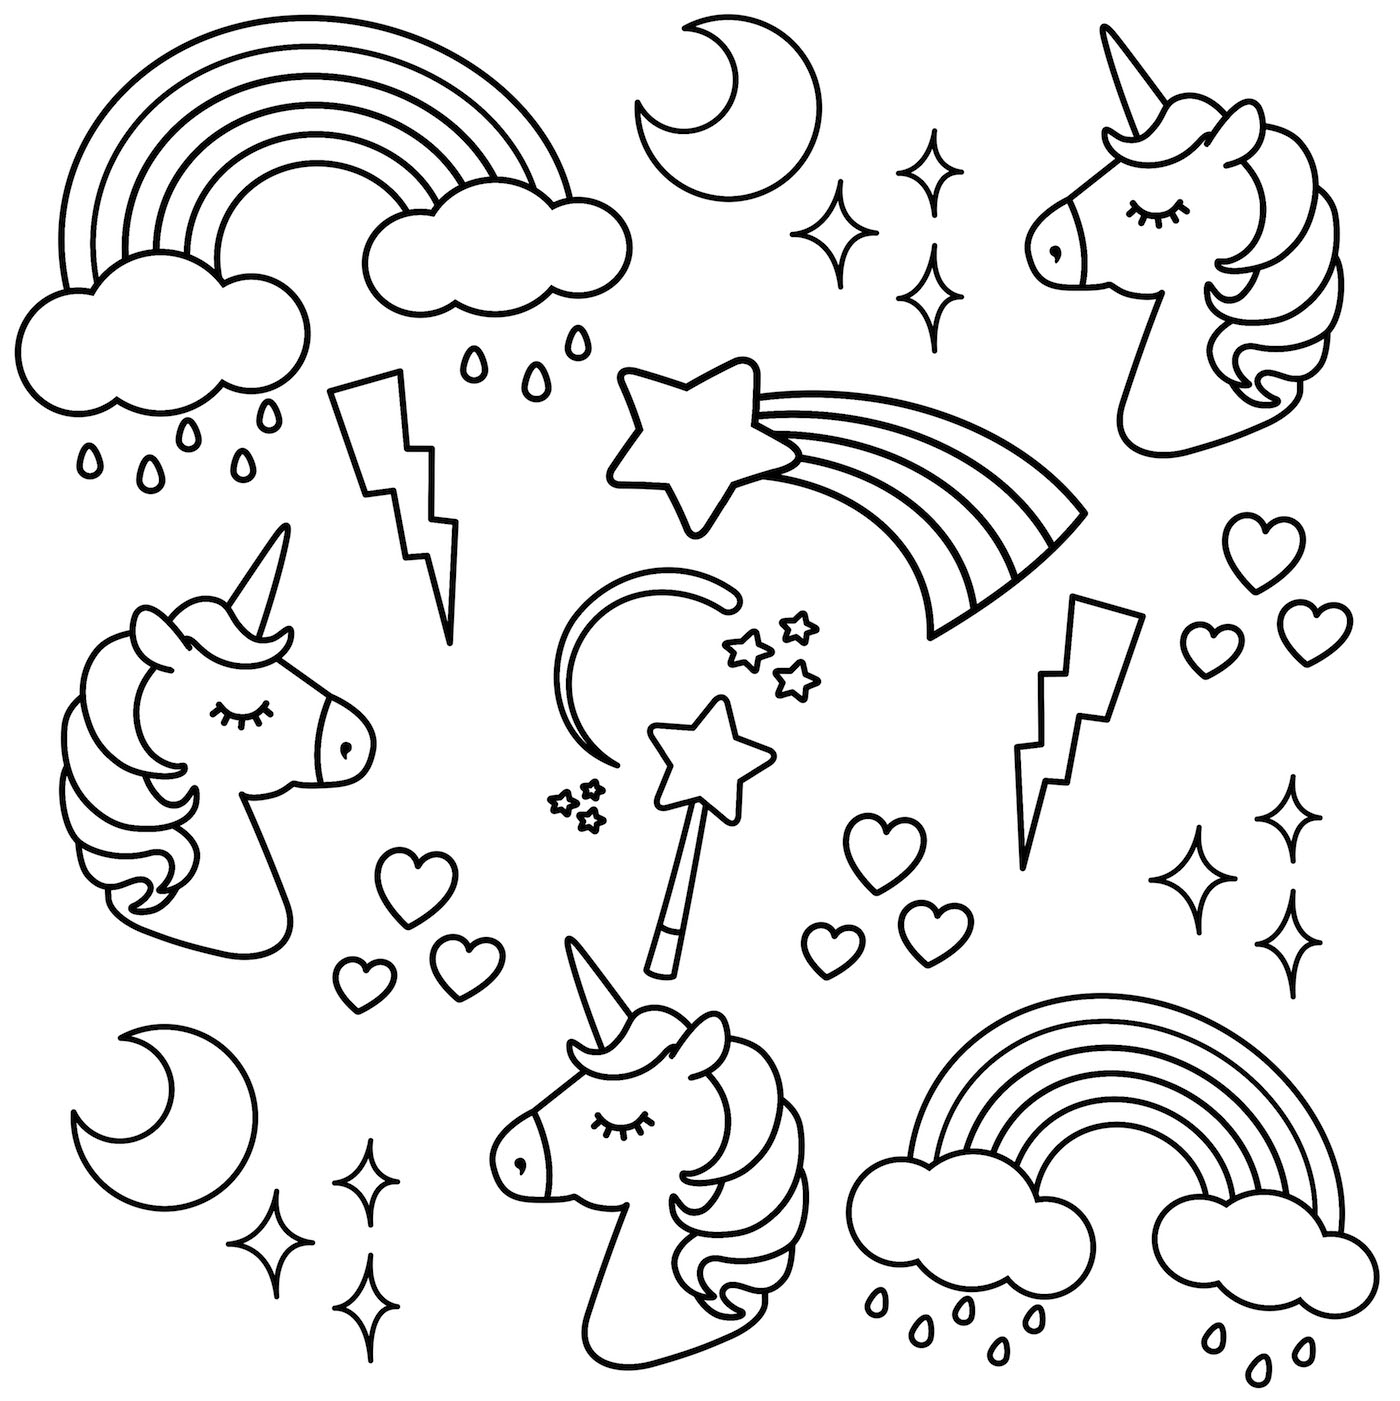 coloring unicorn kids drawing downloadable unicorn colouring page michael o39mara books drawing unicorn kids coloring